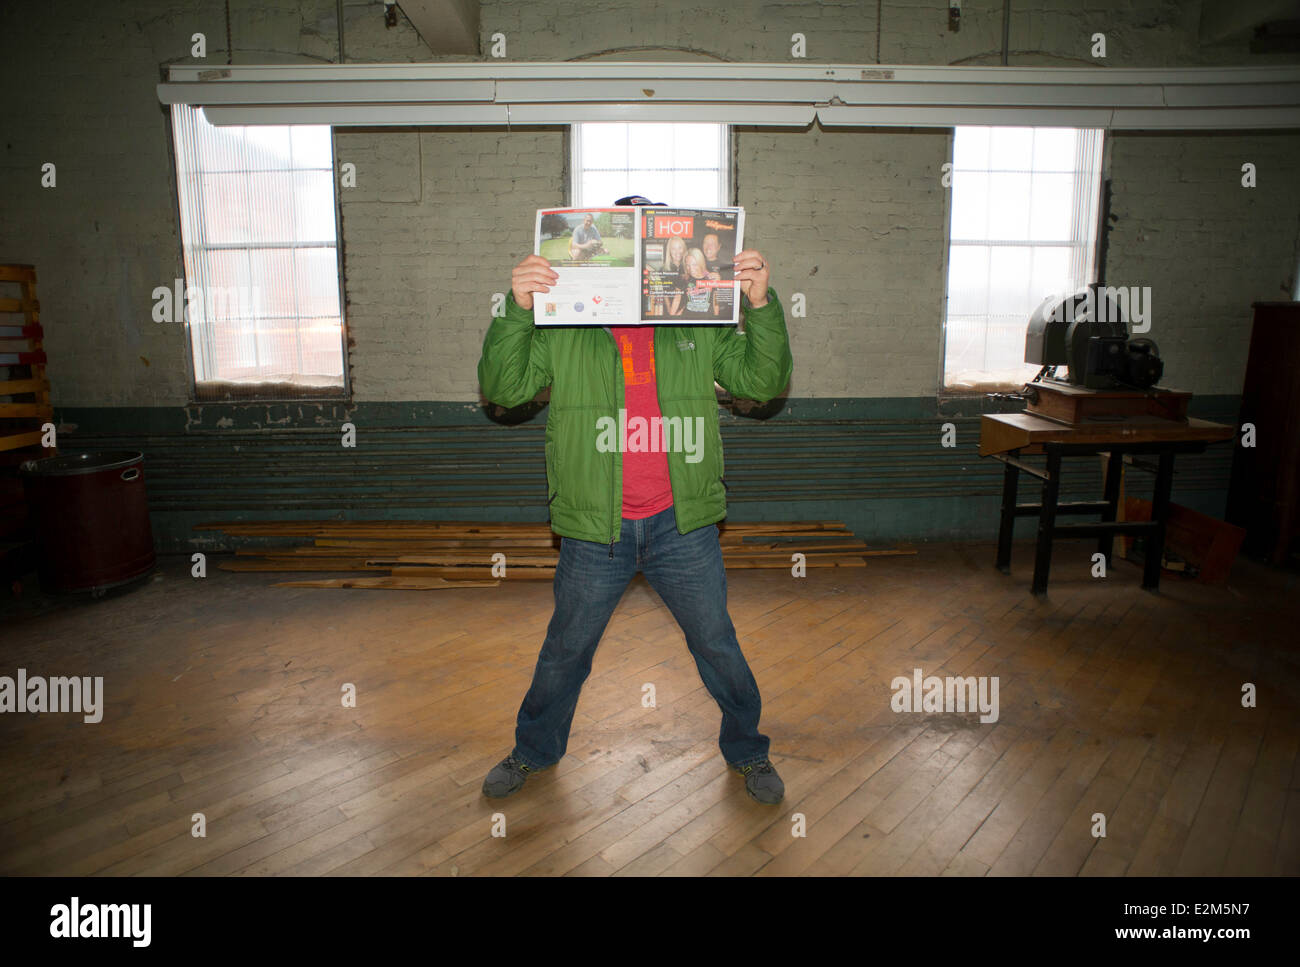 A 40-year-old man wearing a green jacket, red shirt, and jeans ...